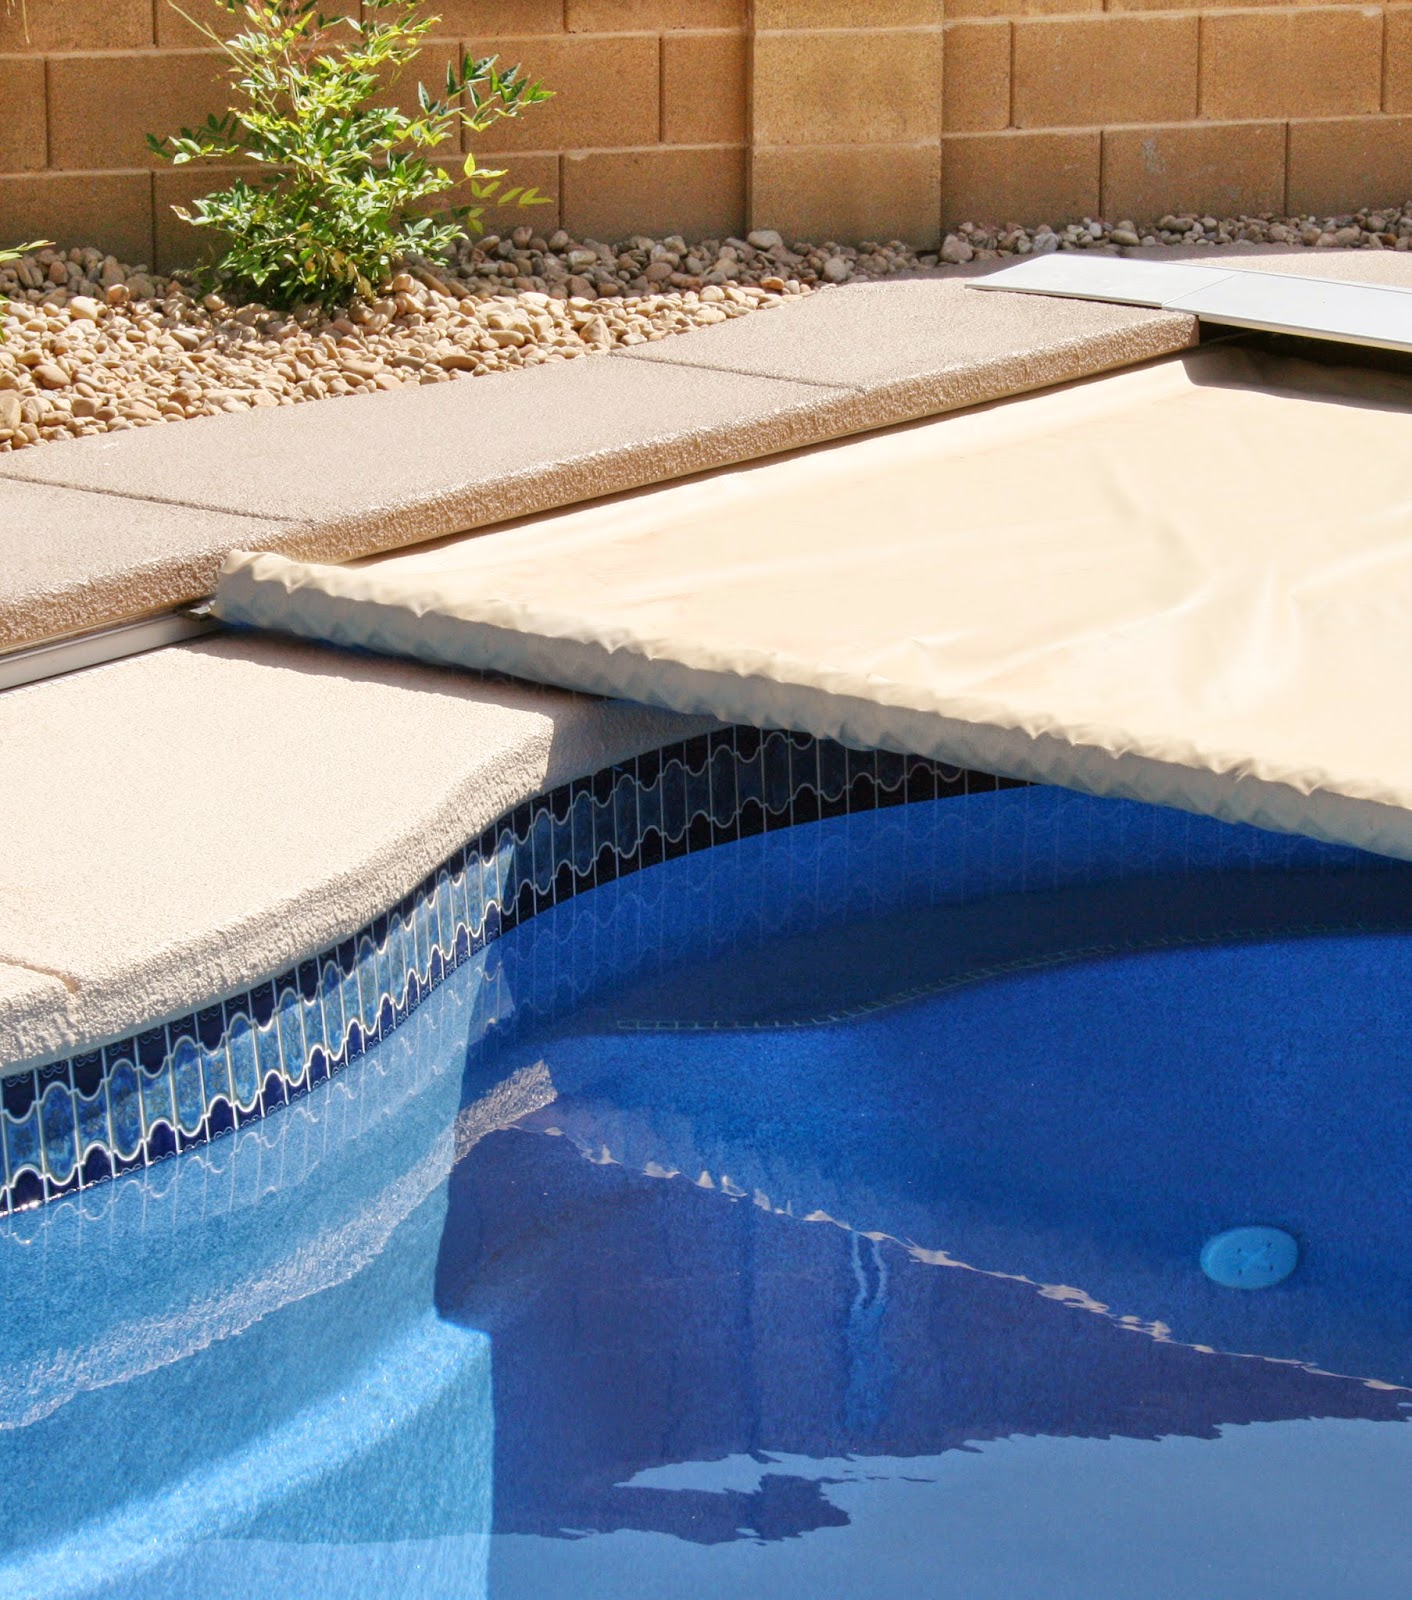 Coverstar safety swimming pool covers for automatic and solid mesh coverstar featured for Automatic swimming pool covers